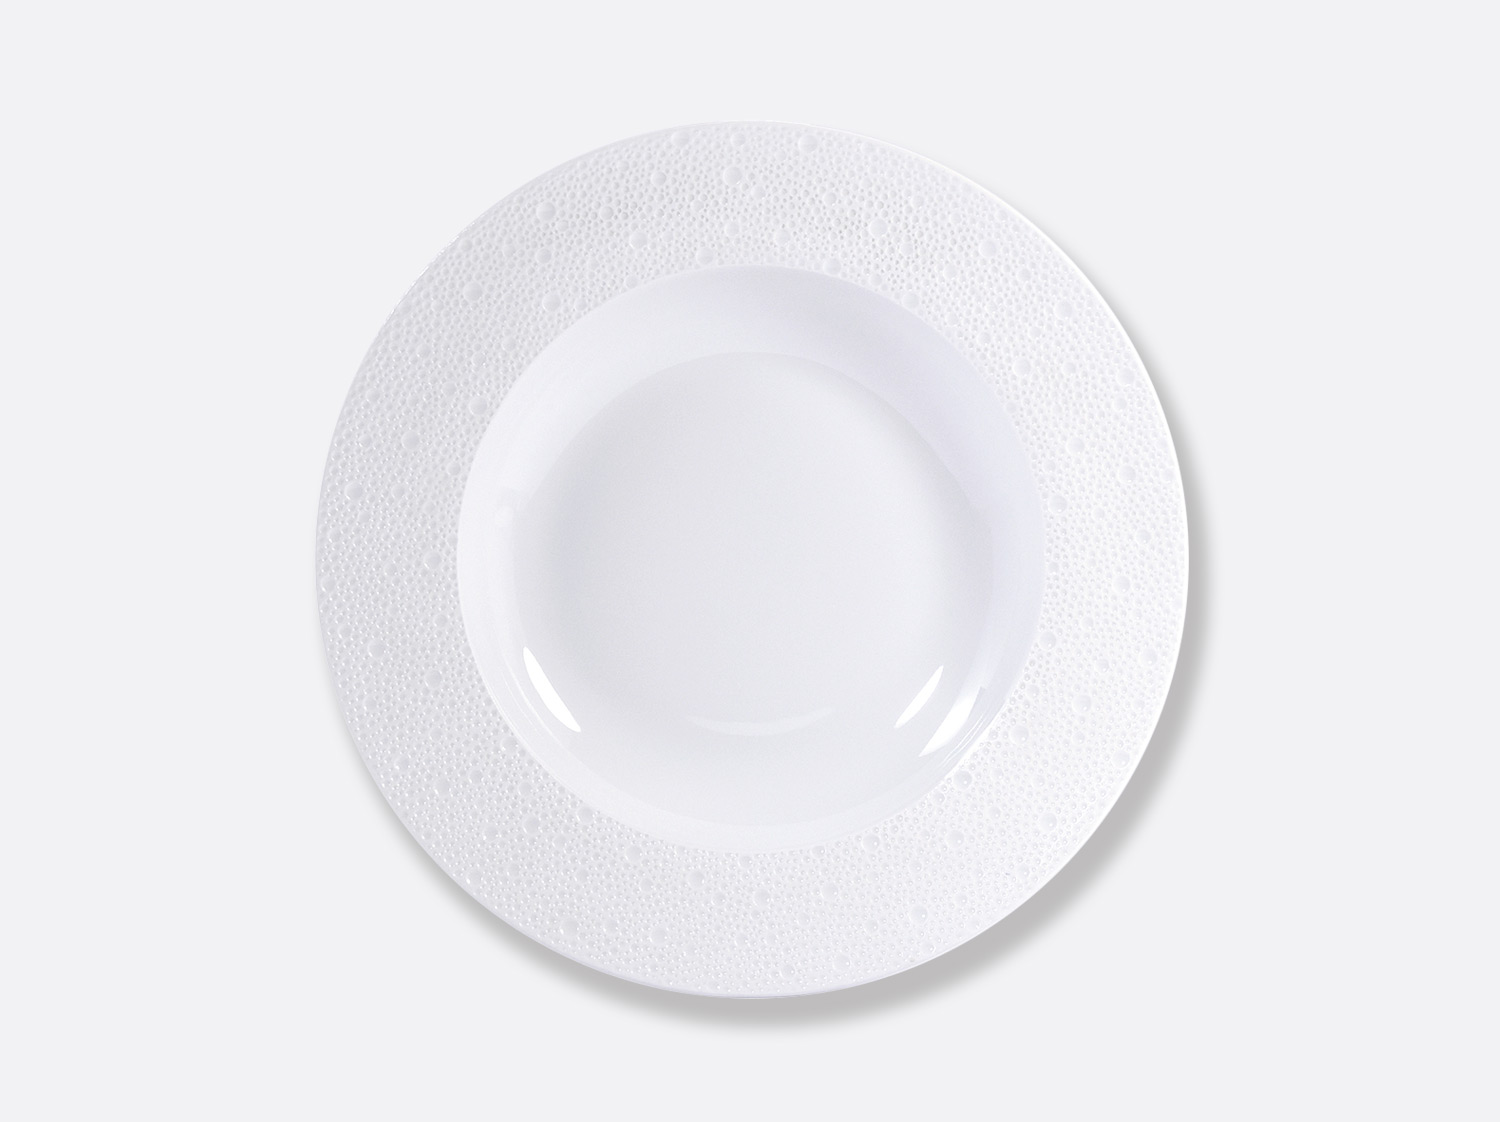 Assiette creuse à ailes 29,5 cm en porcelaine de la collection Ecume Bernardaud